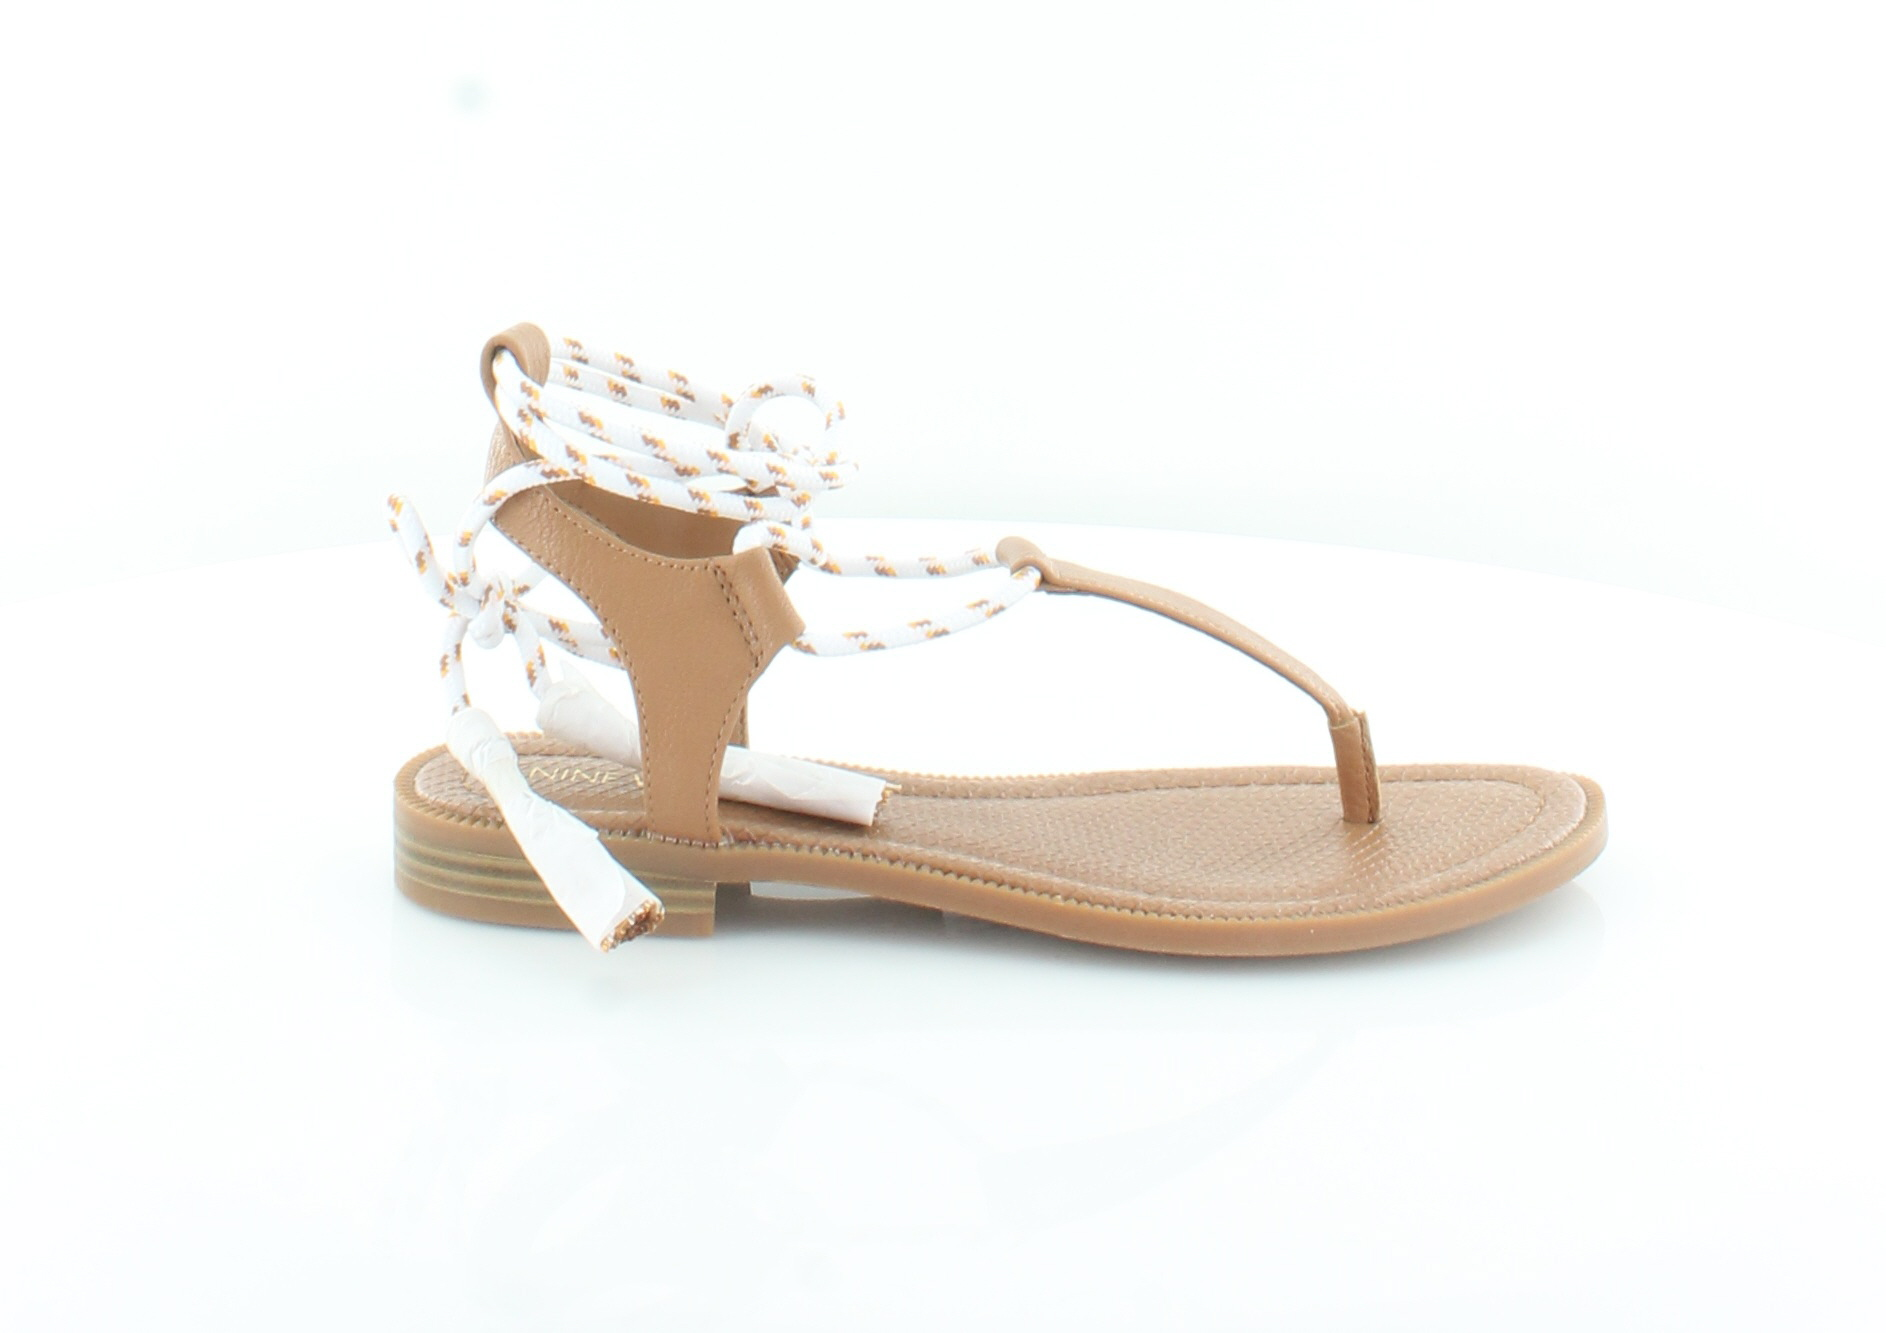 Nine West Gannon Women's Sandals Natural Dk Natural Sandals ee6375